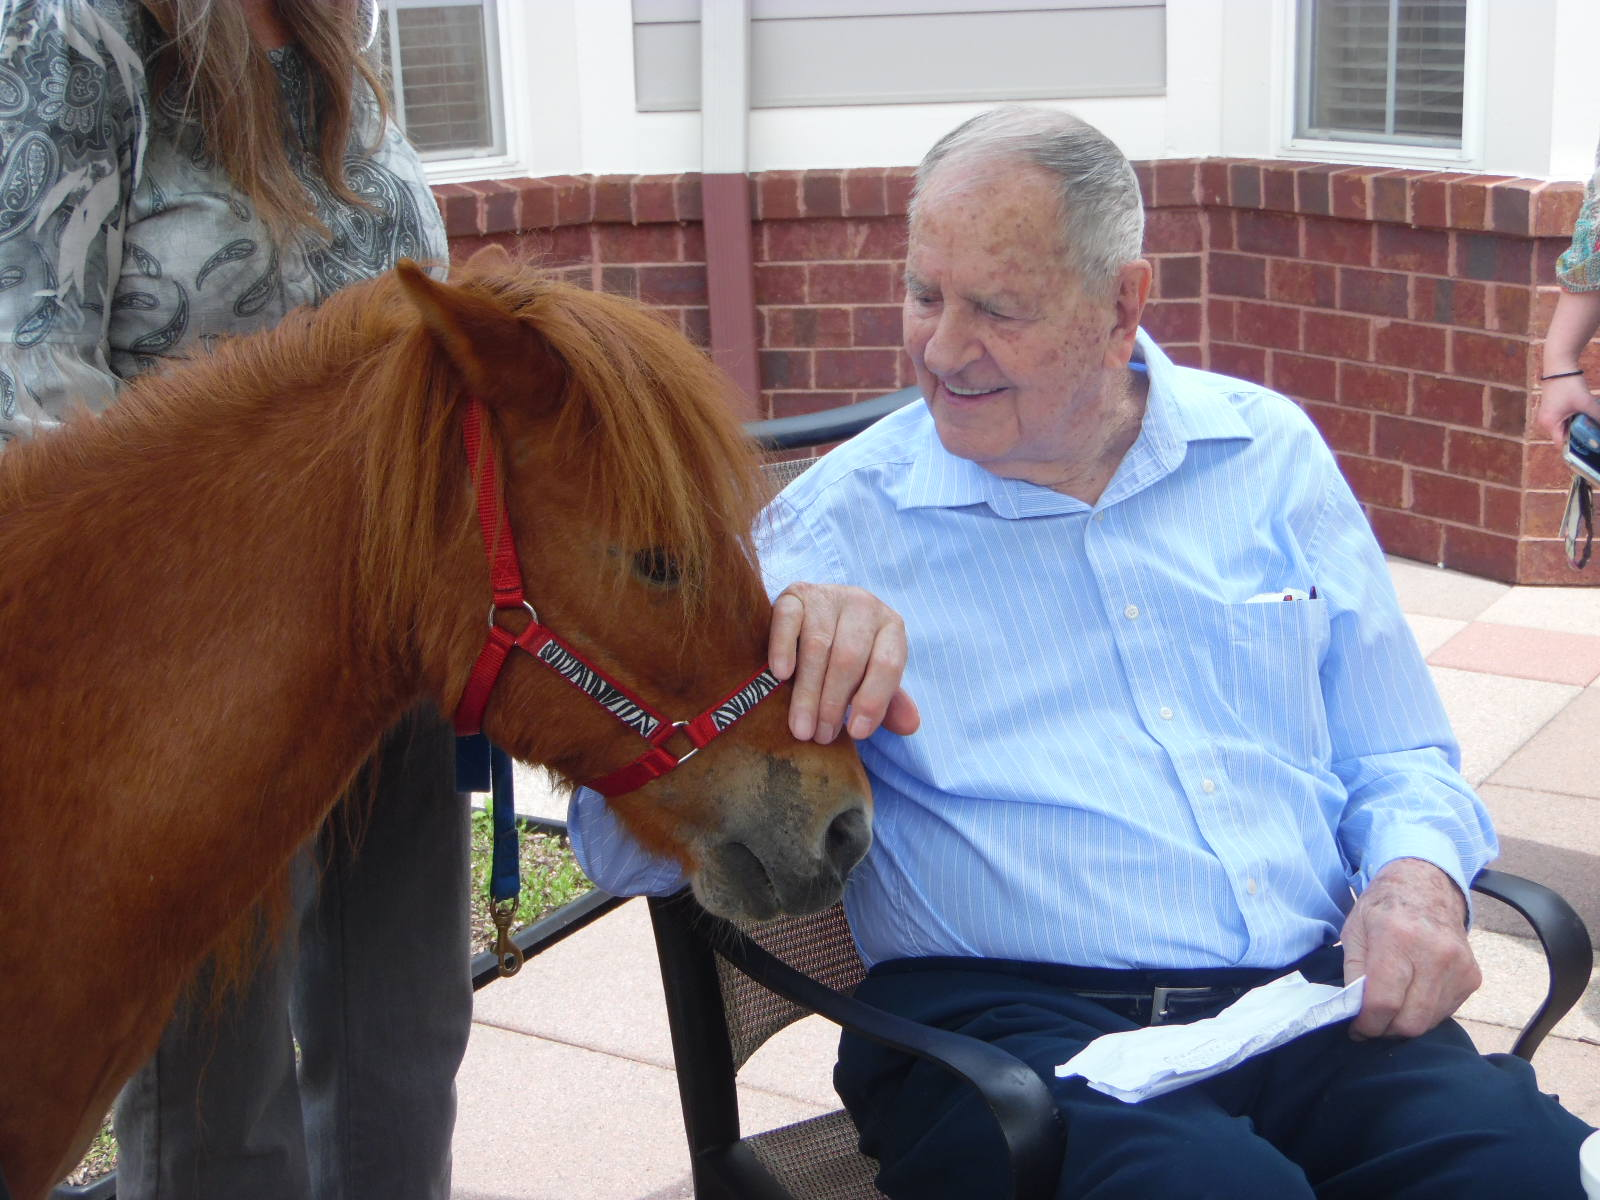 Kentucky Derby Activity with a pony for animal-assisted therapy